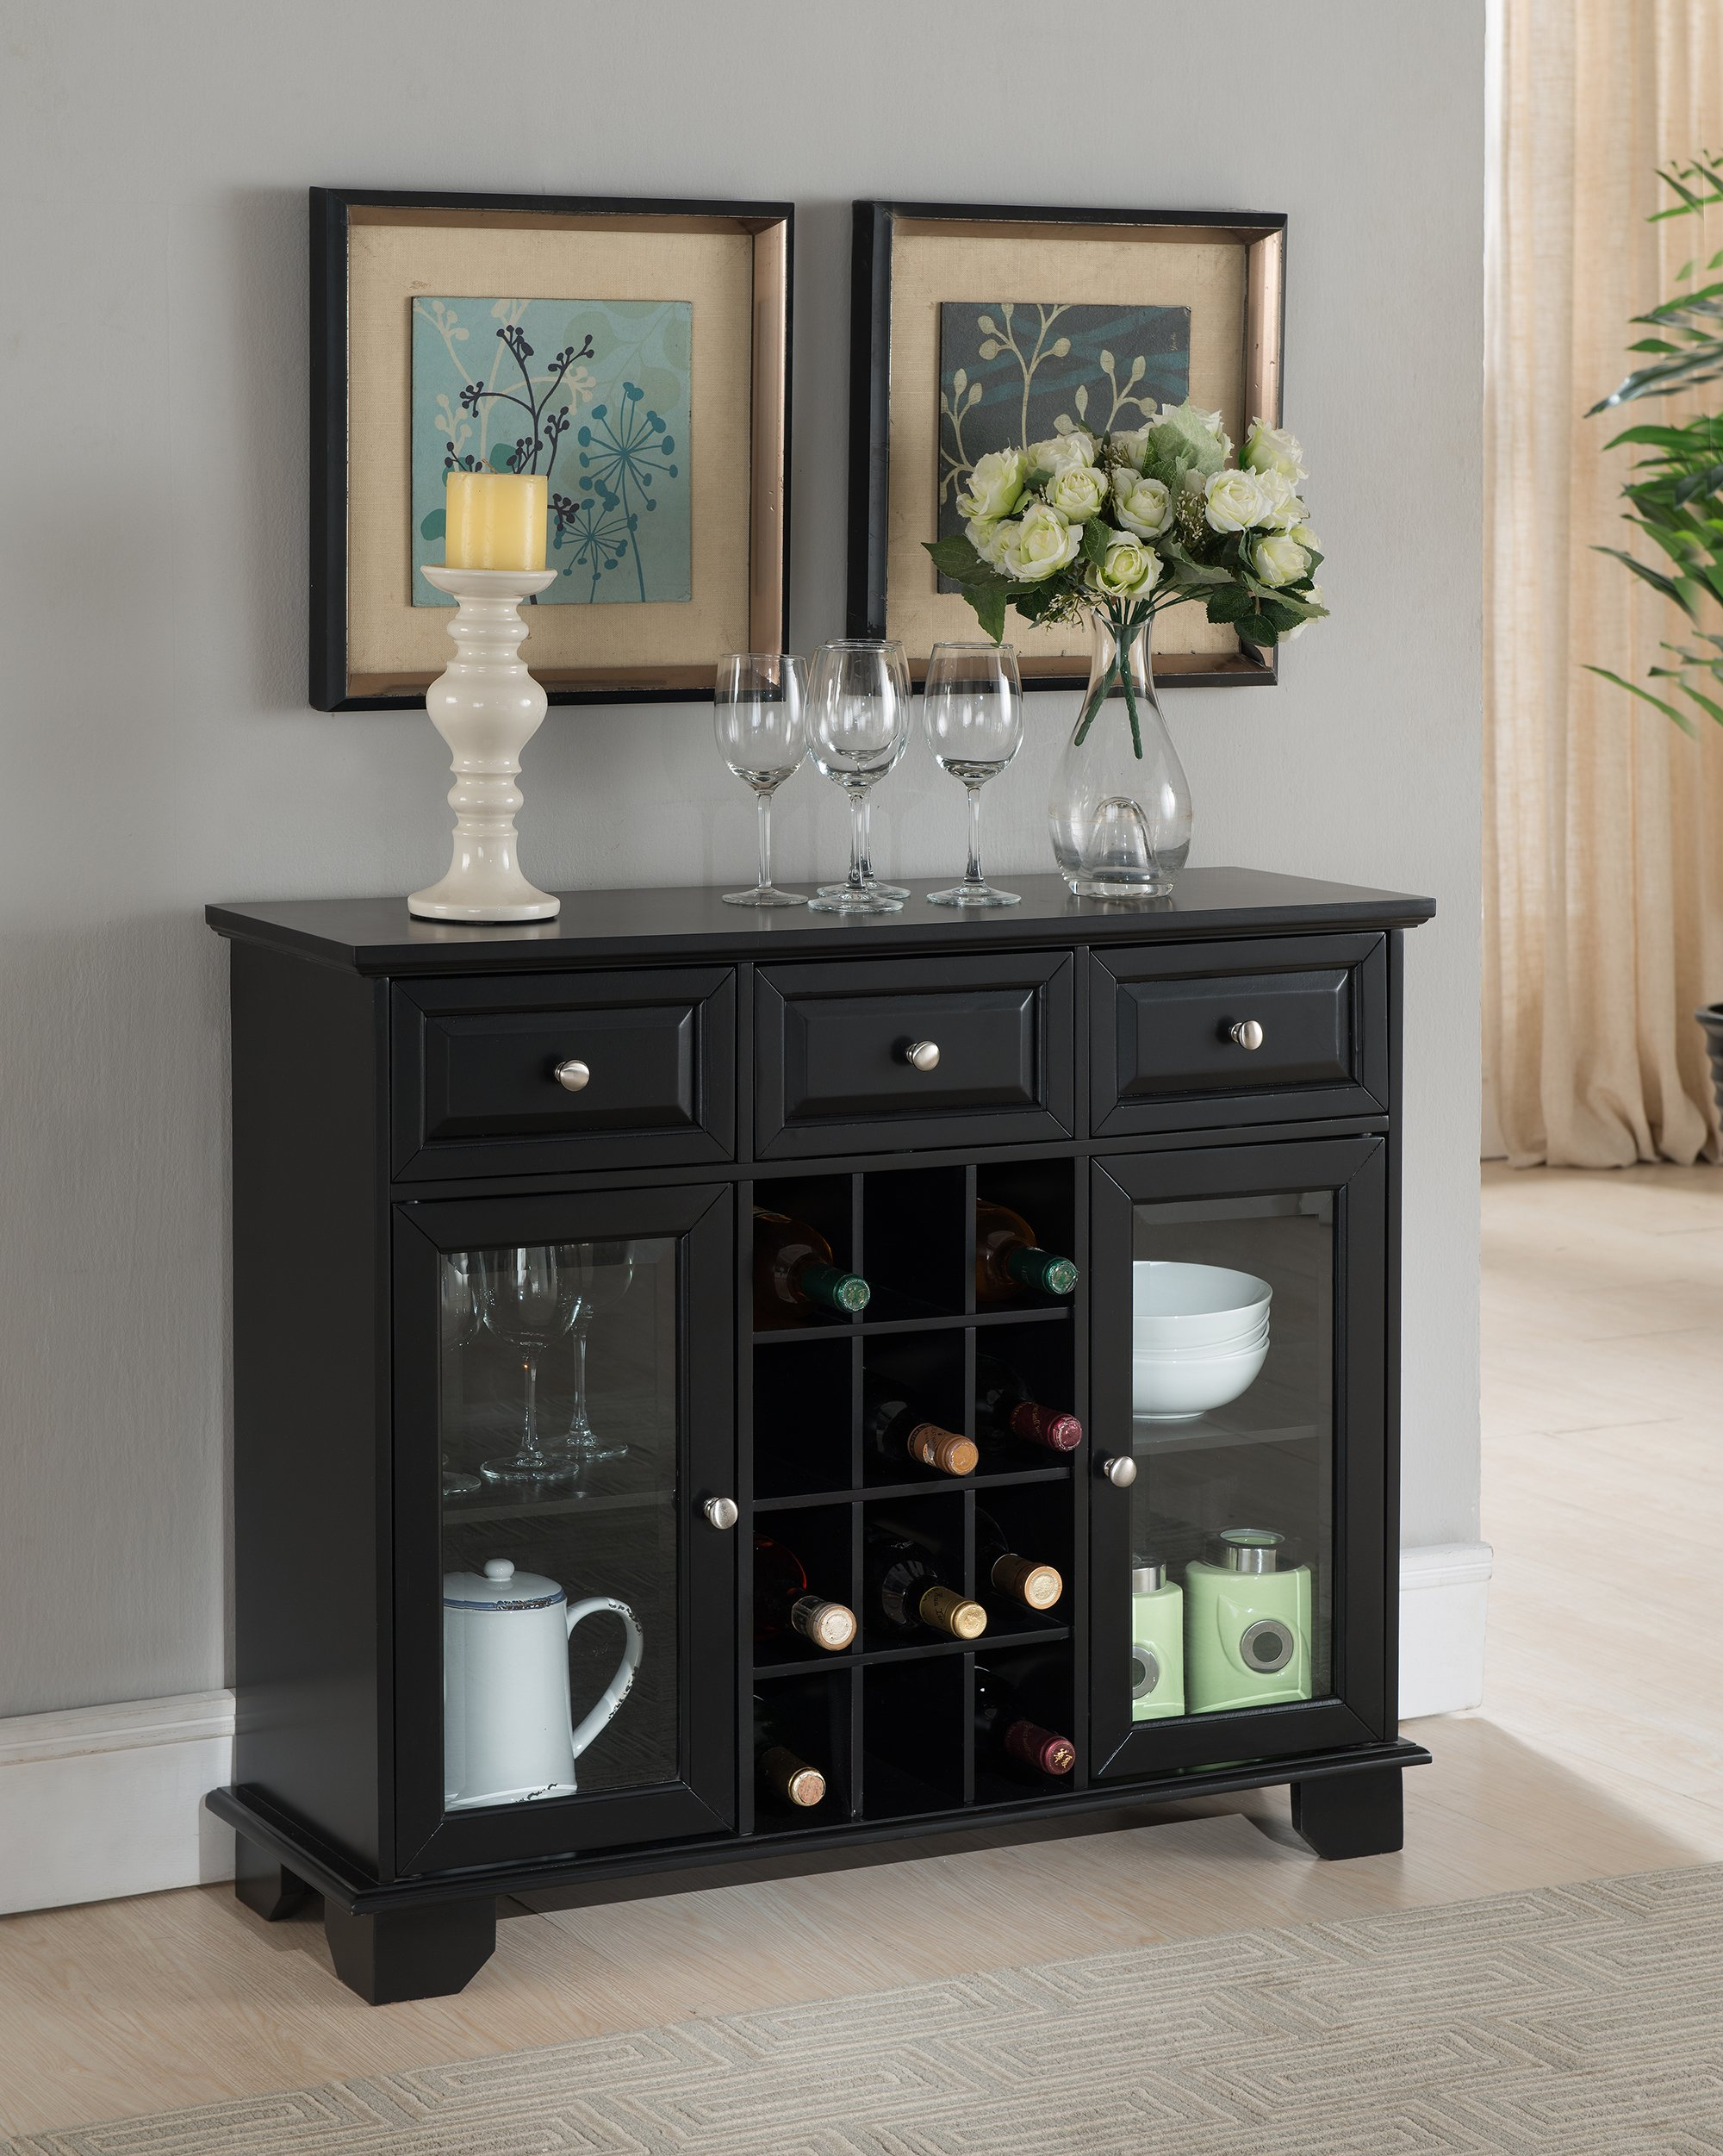 Kings Brand Furniture Buffet Server Sideboard Cabinet with Wine Storage, Black by Kings Brand Furniture